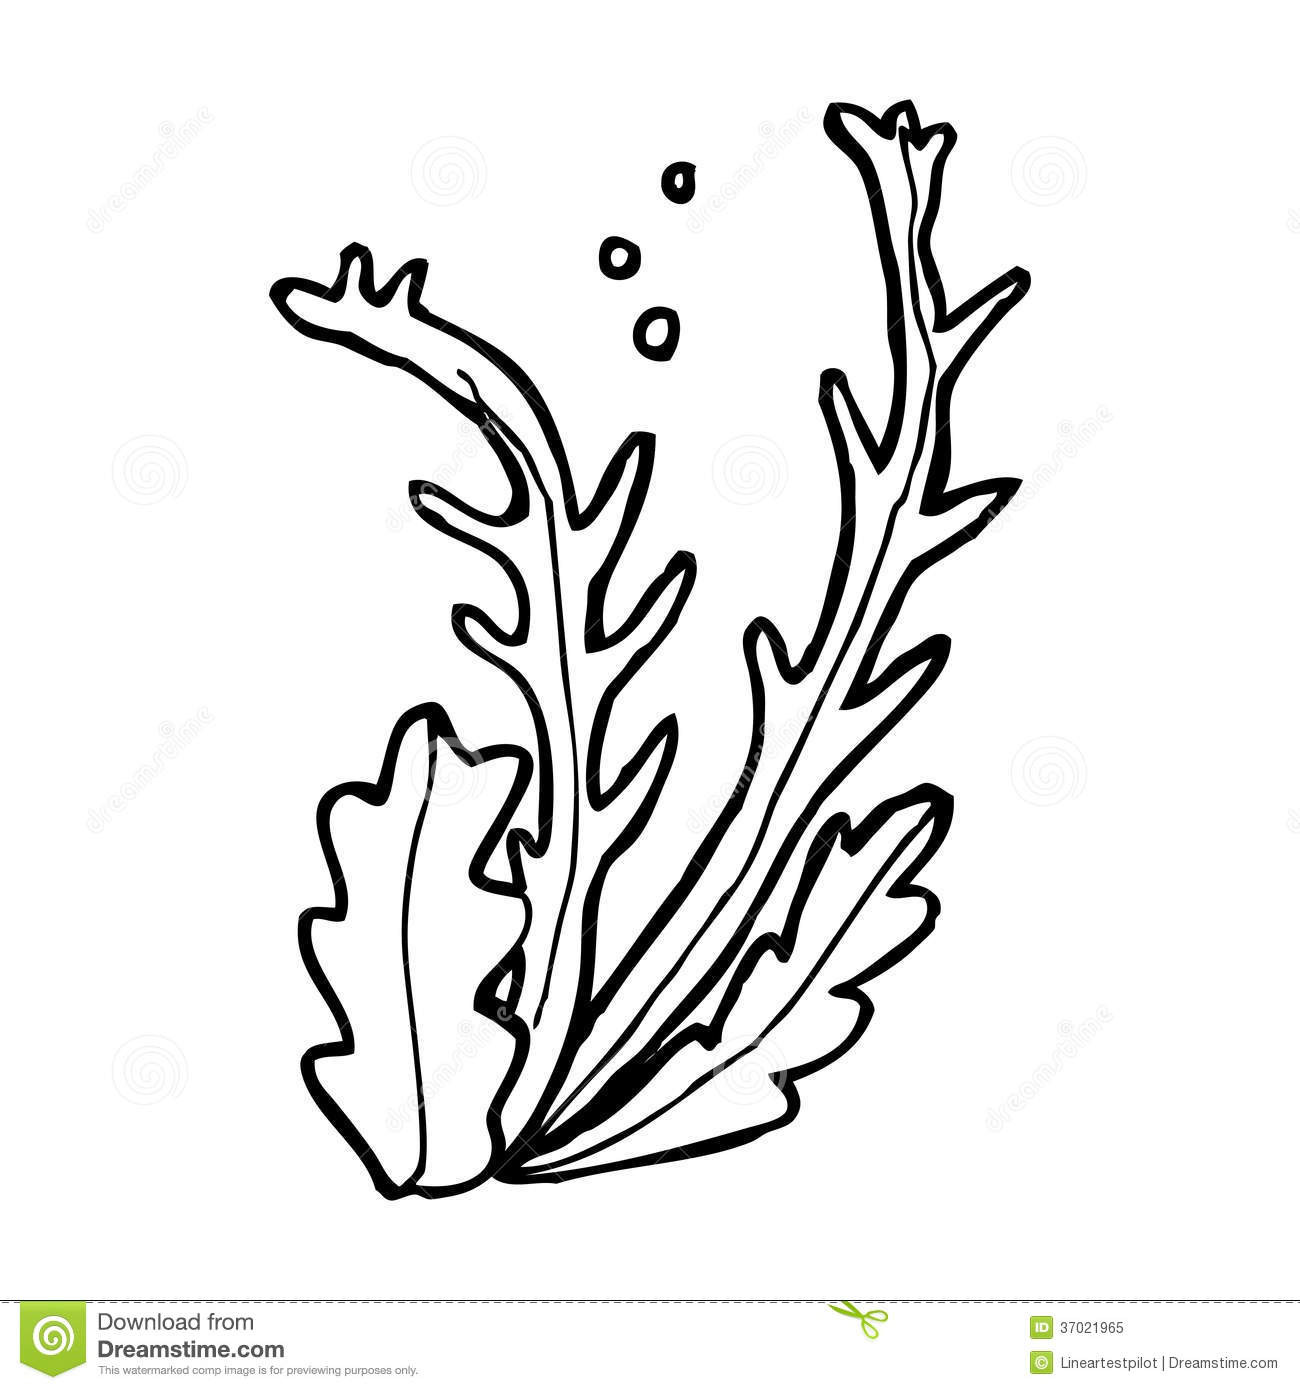 Seaweed Coloring Pages  Seaweed clipart black and white Pencil and in color